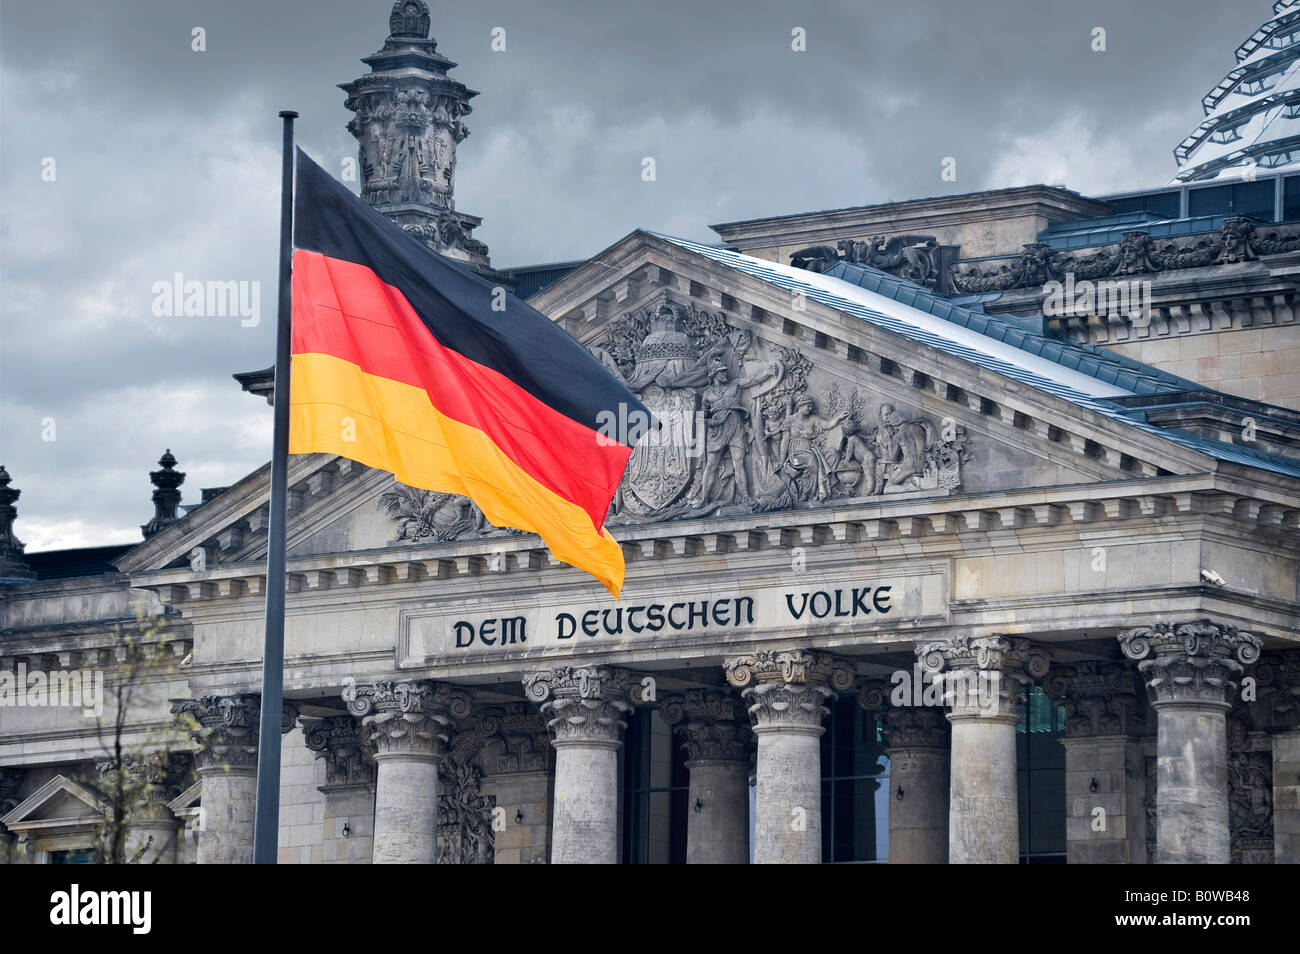 German flag, Reichstag, German parliament building, Berlin, Germany - Stock Image